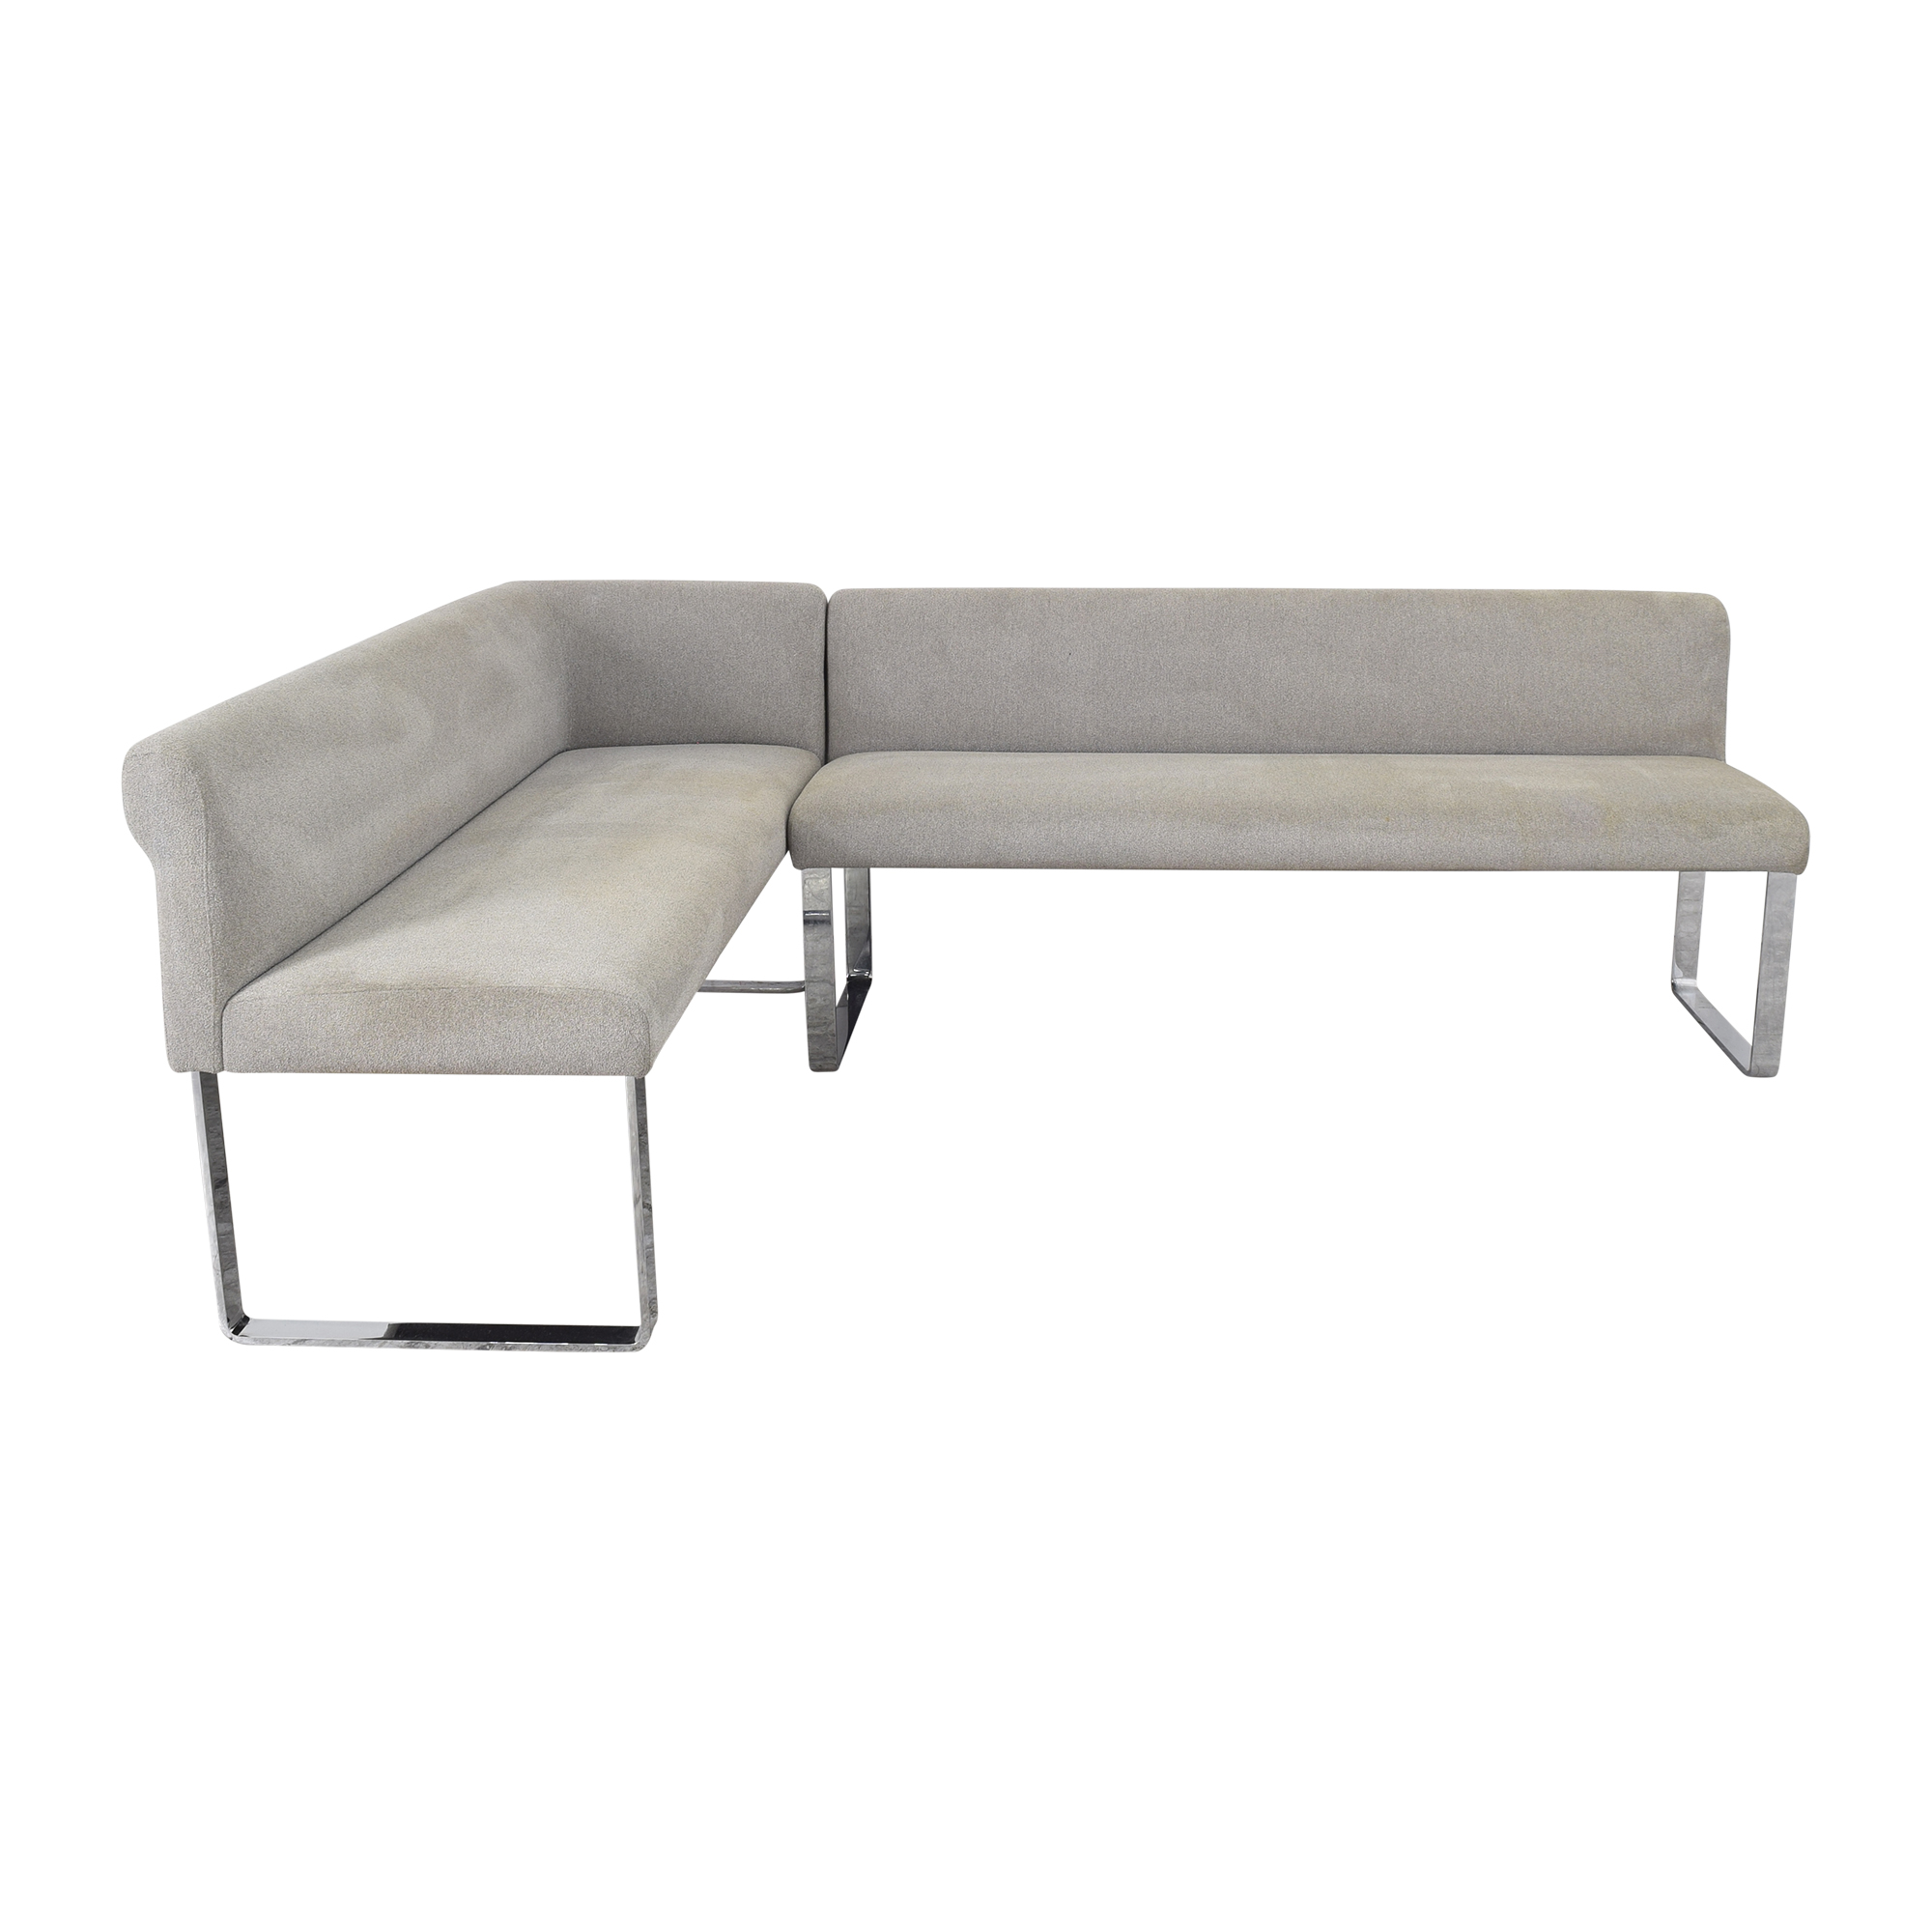 Custom Corner Banquette Bench nyc